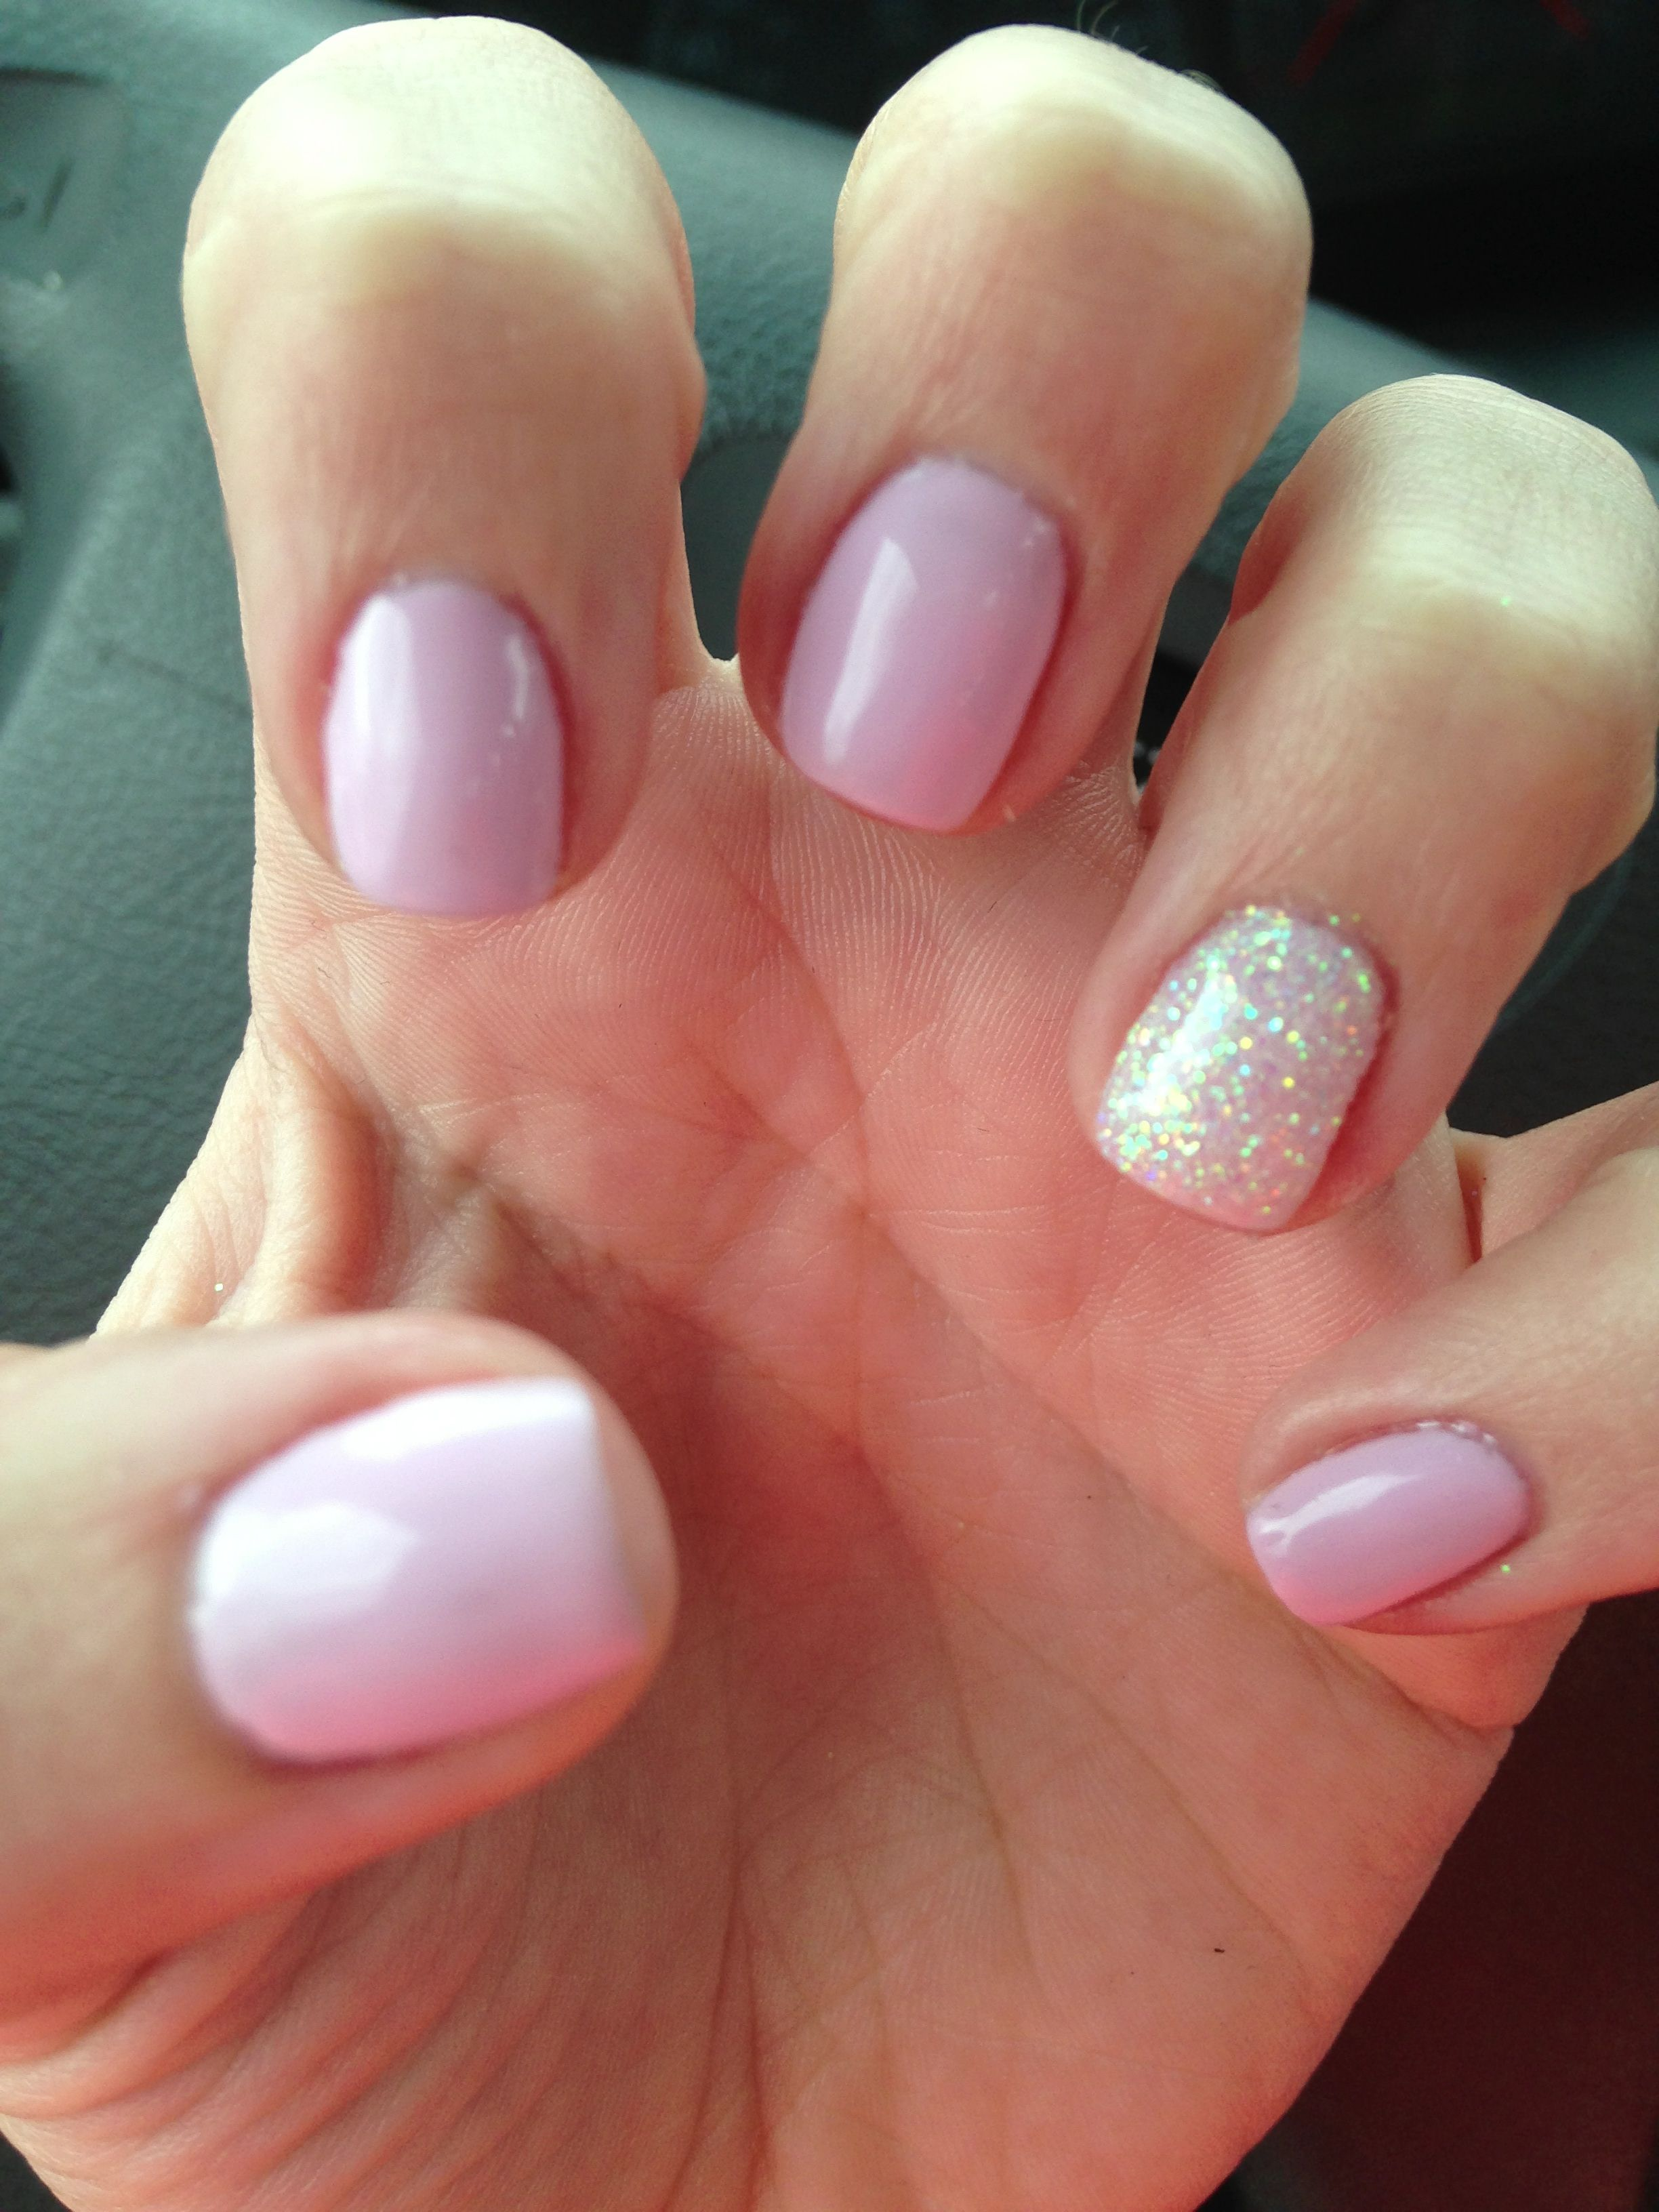 Cake pop pink shellac with white glitter ascent nail ...